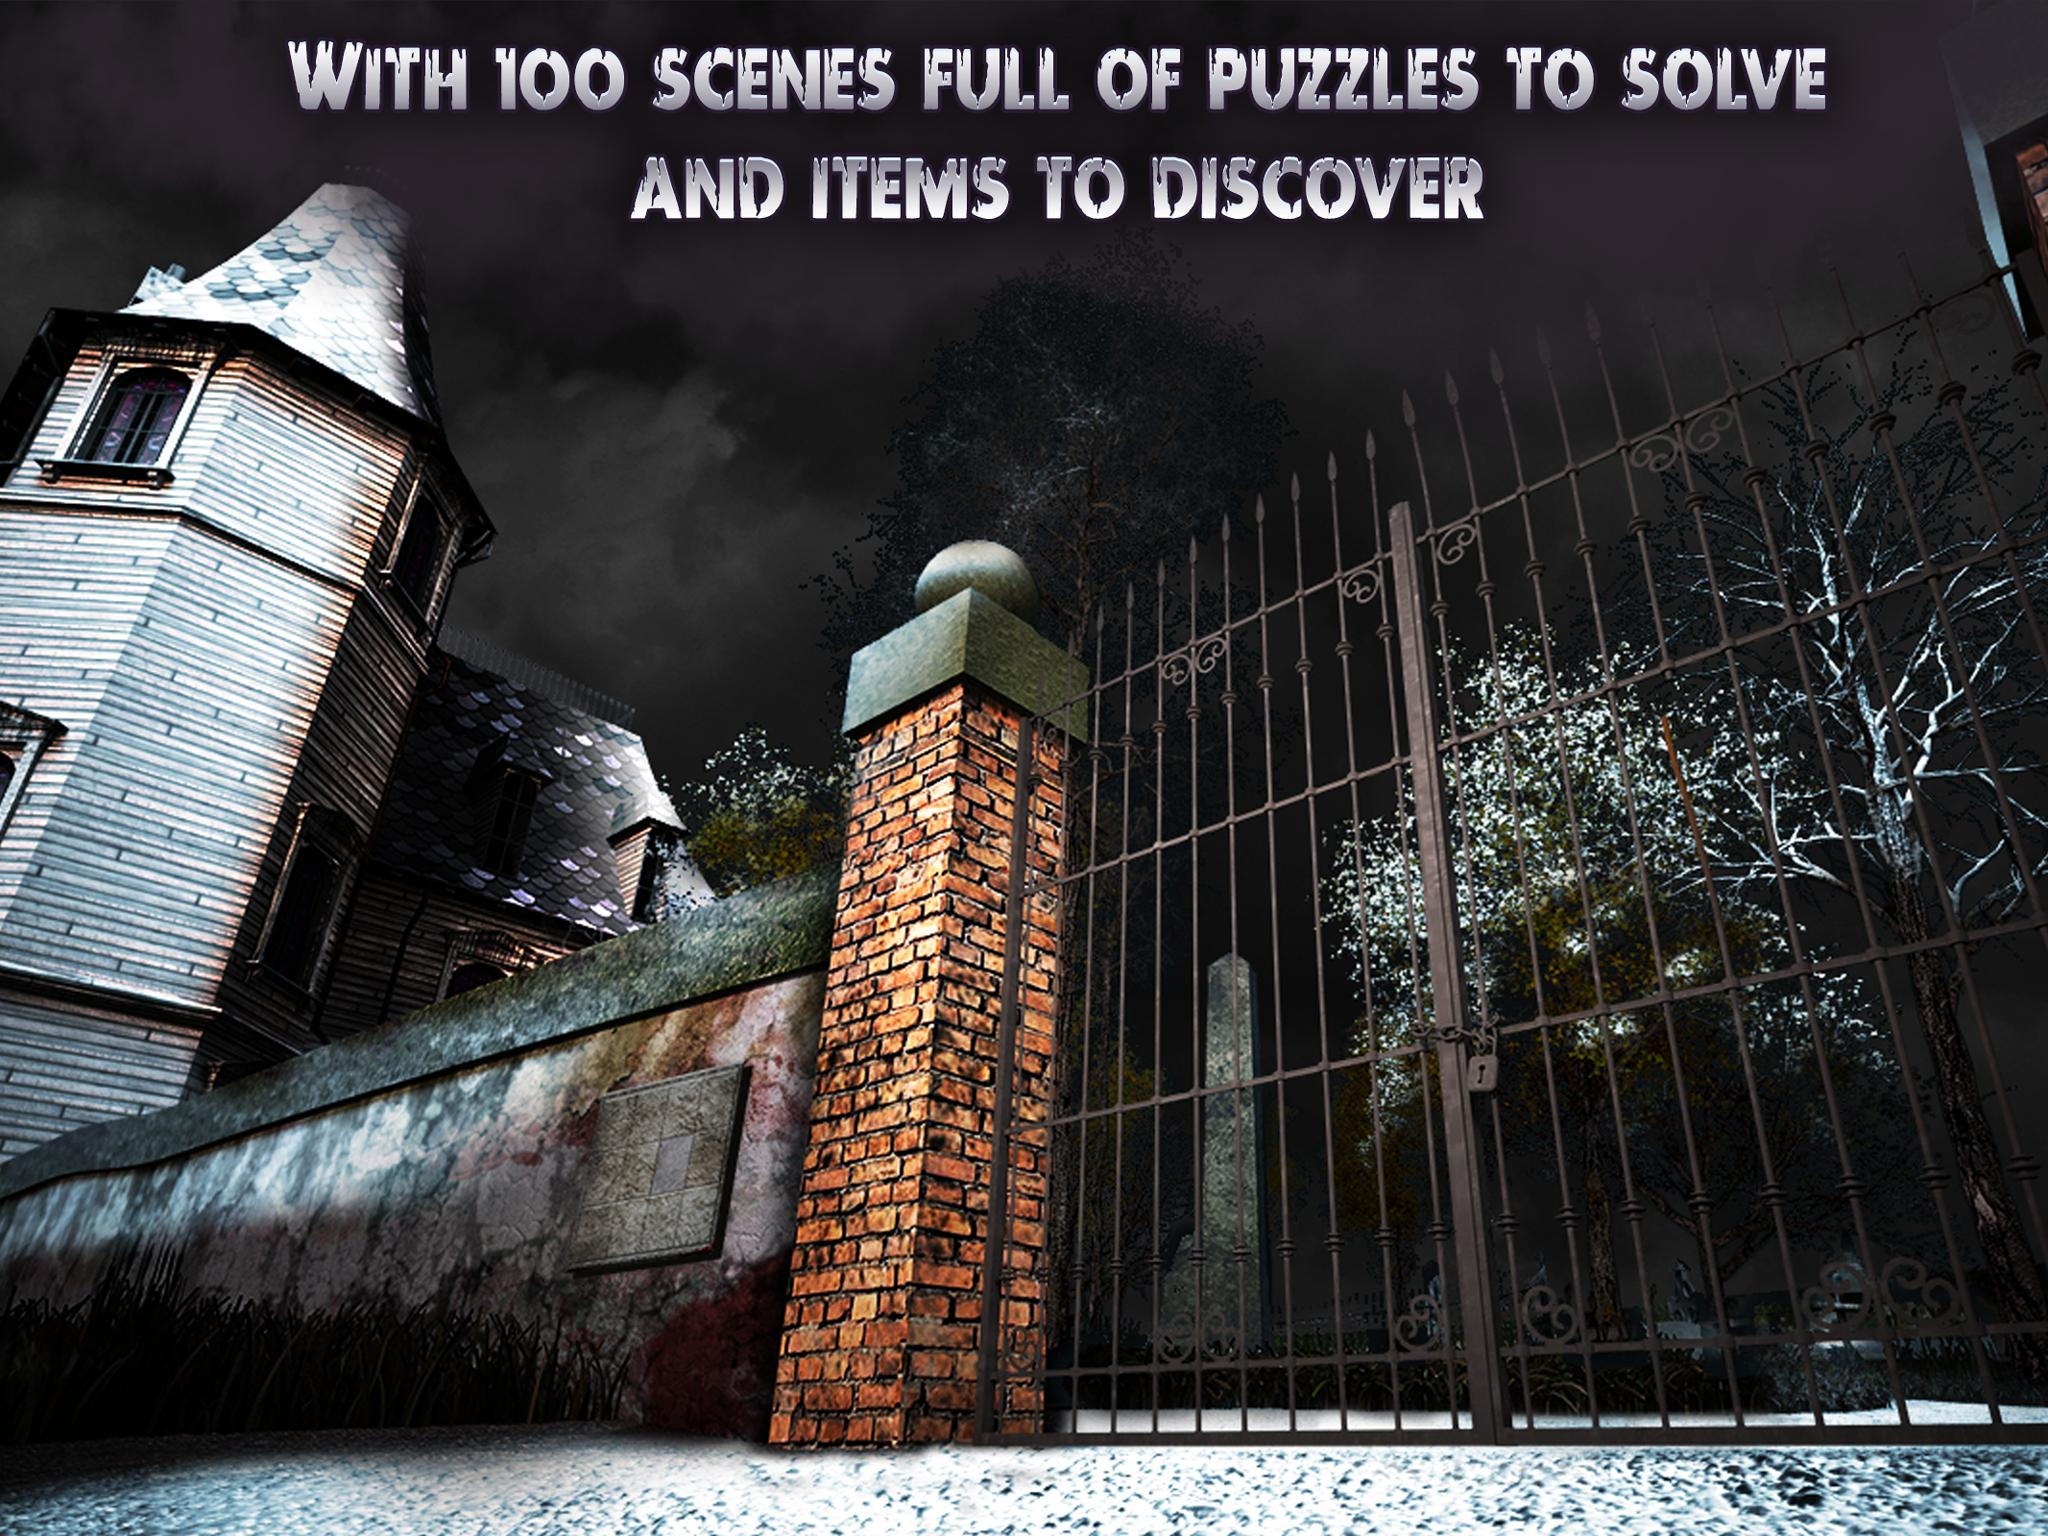 Haunted Manor 2 – The Horror behind the Mystery 1.5.2 Screenshot 6